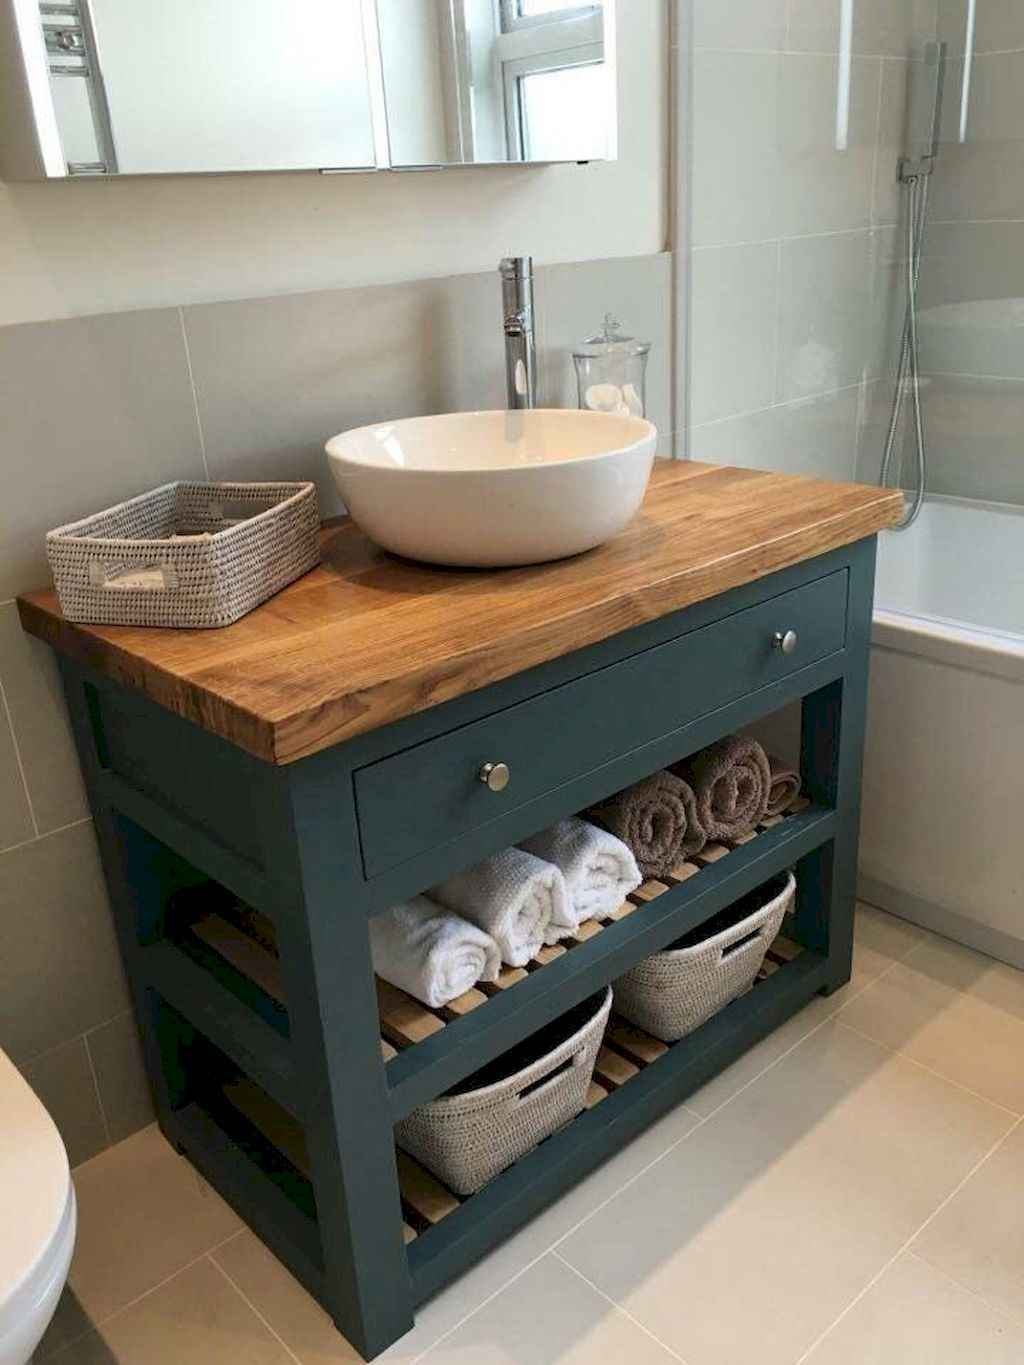 111 awesome small bathroom remodel ideas on a budget (30)